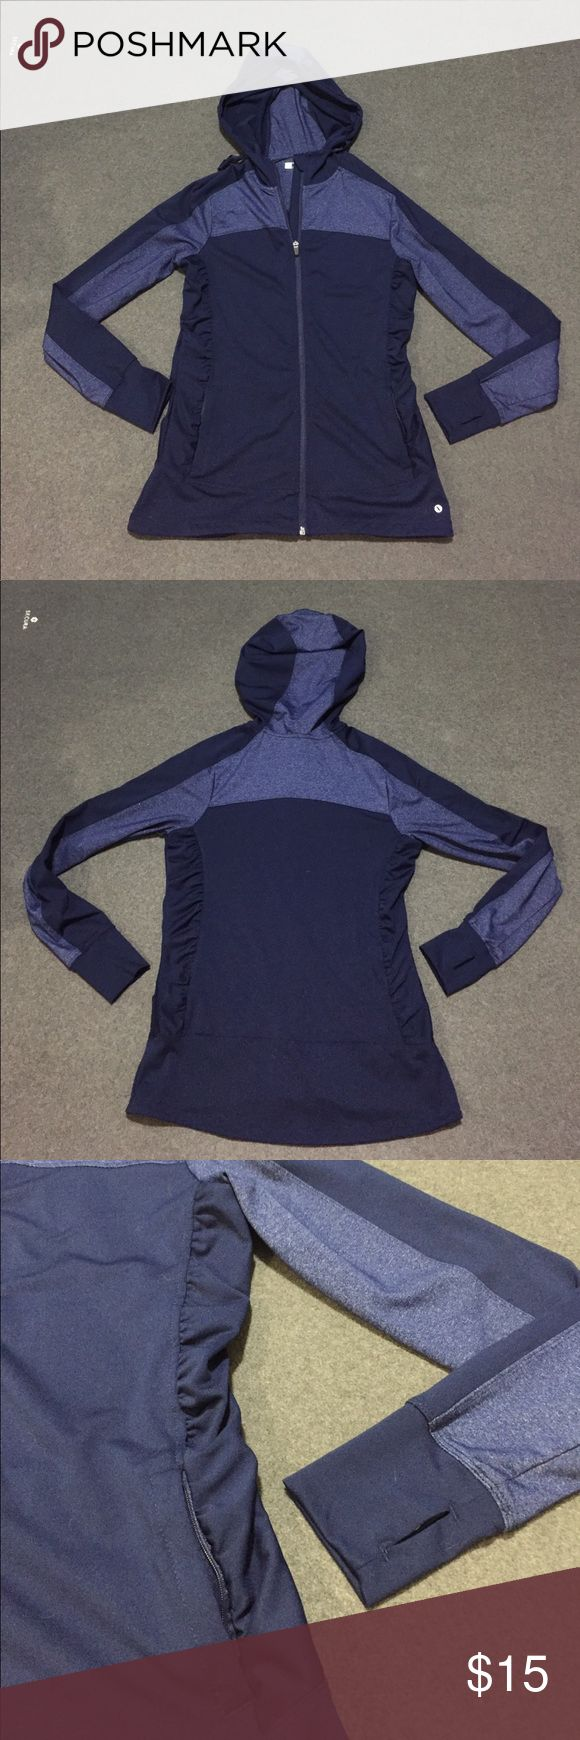 Navy Blue Lightweight Active Wear Jacket This is a women's small, navy blue & heathered navy blue workout jacket. It's lightweight, made of polyester & spandex, so it's comfortable & has some stretch. Features hood, thumb holes, two zip pockets, and flattering fit (including some rouching details). Love this jacket, but I have too many and it has been sitting my closet NOT getting used. 😕 EUC. Xersion Jackets & Coats